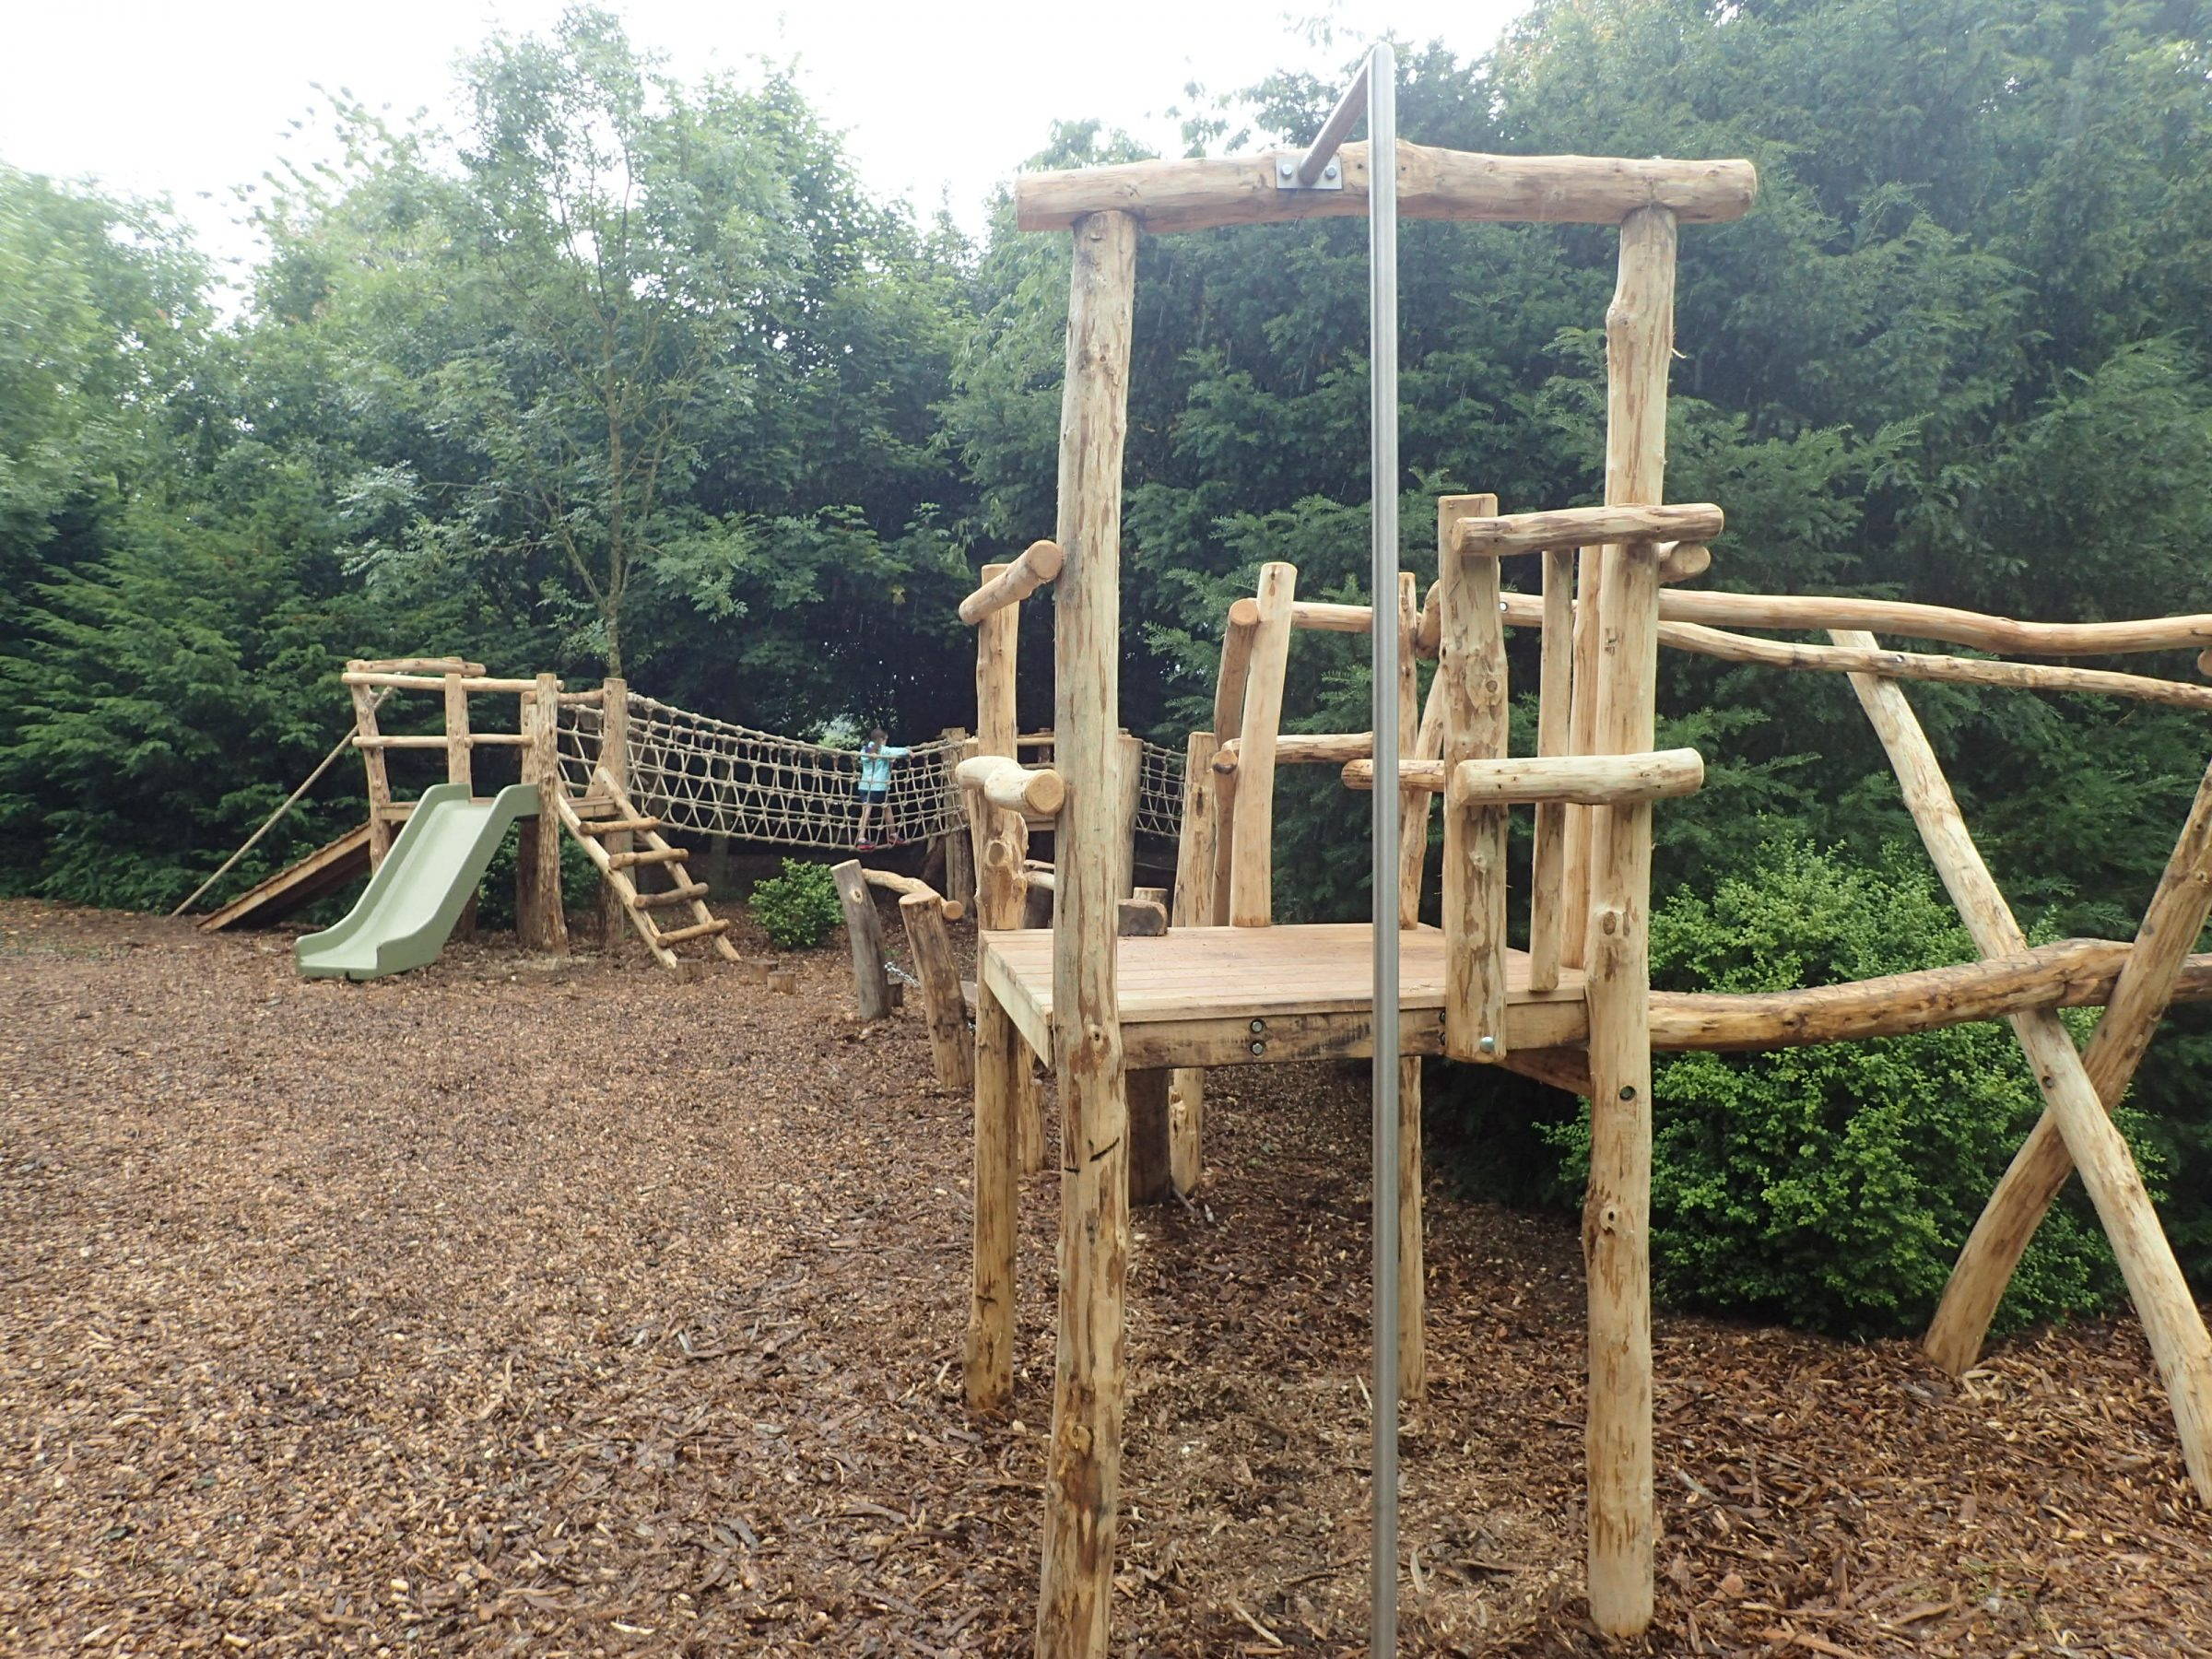 Traditional Wooden Play Equipment & Apparatus | Flights of ...